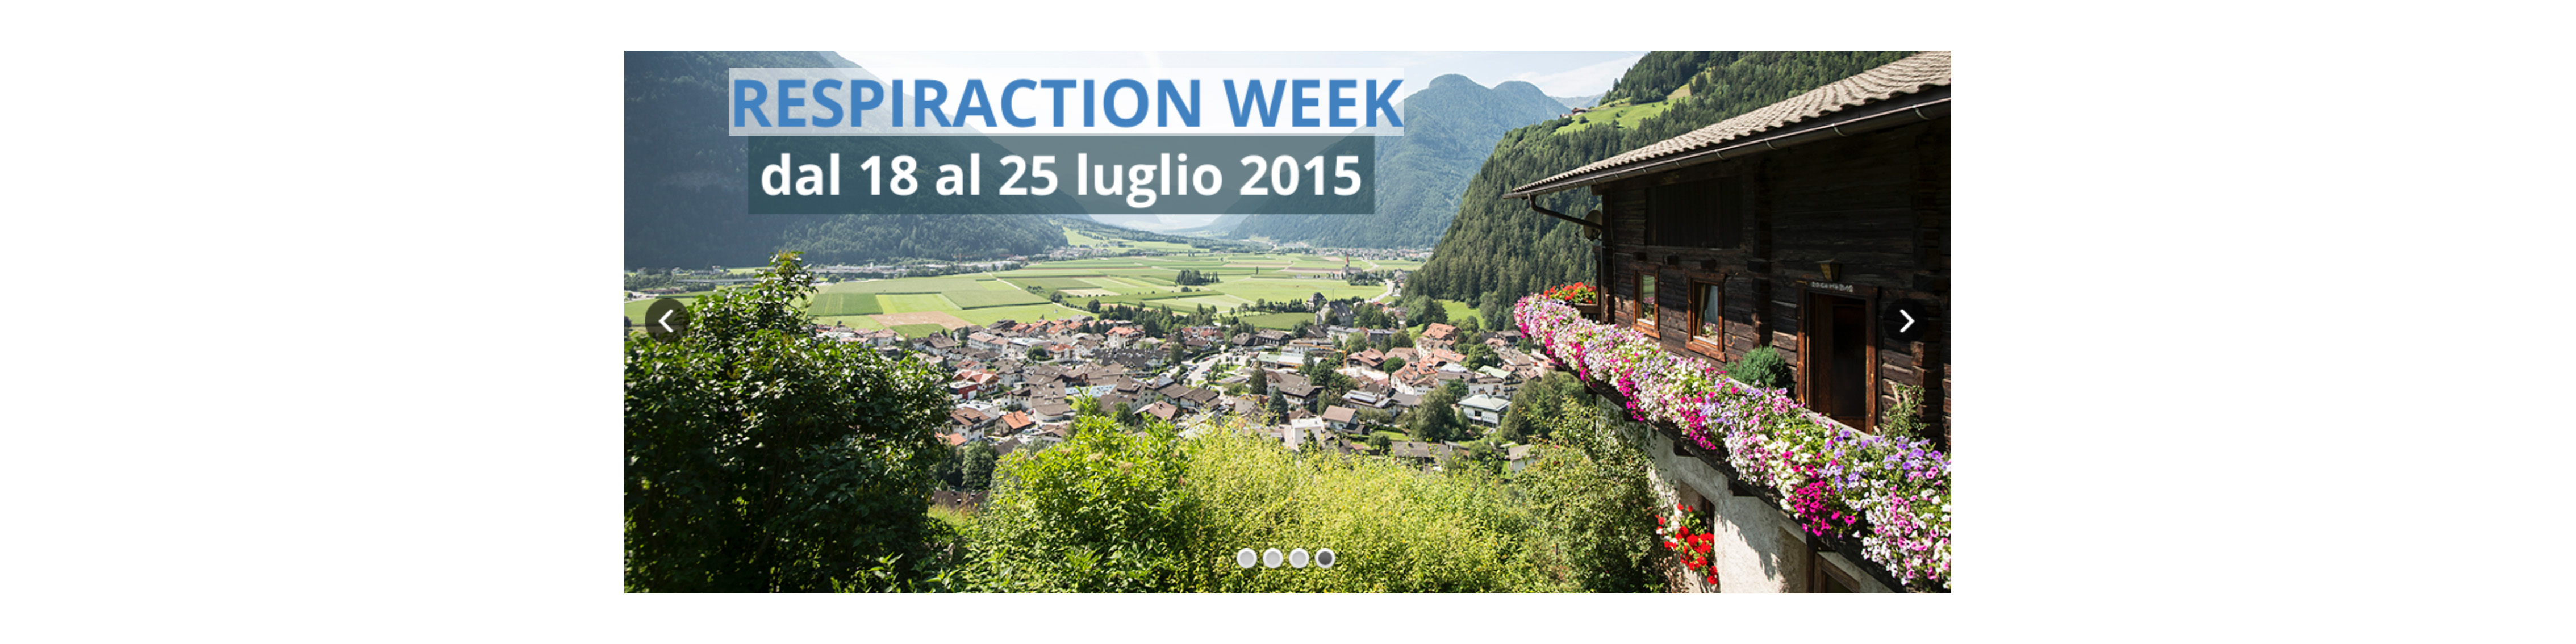 respiraction week